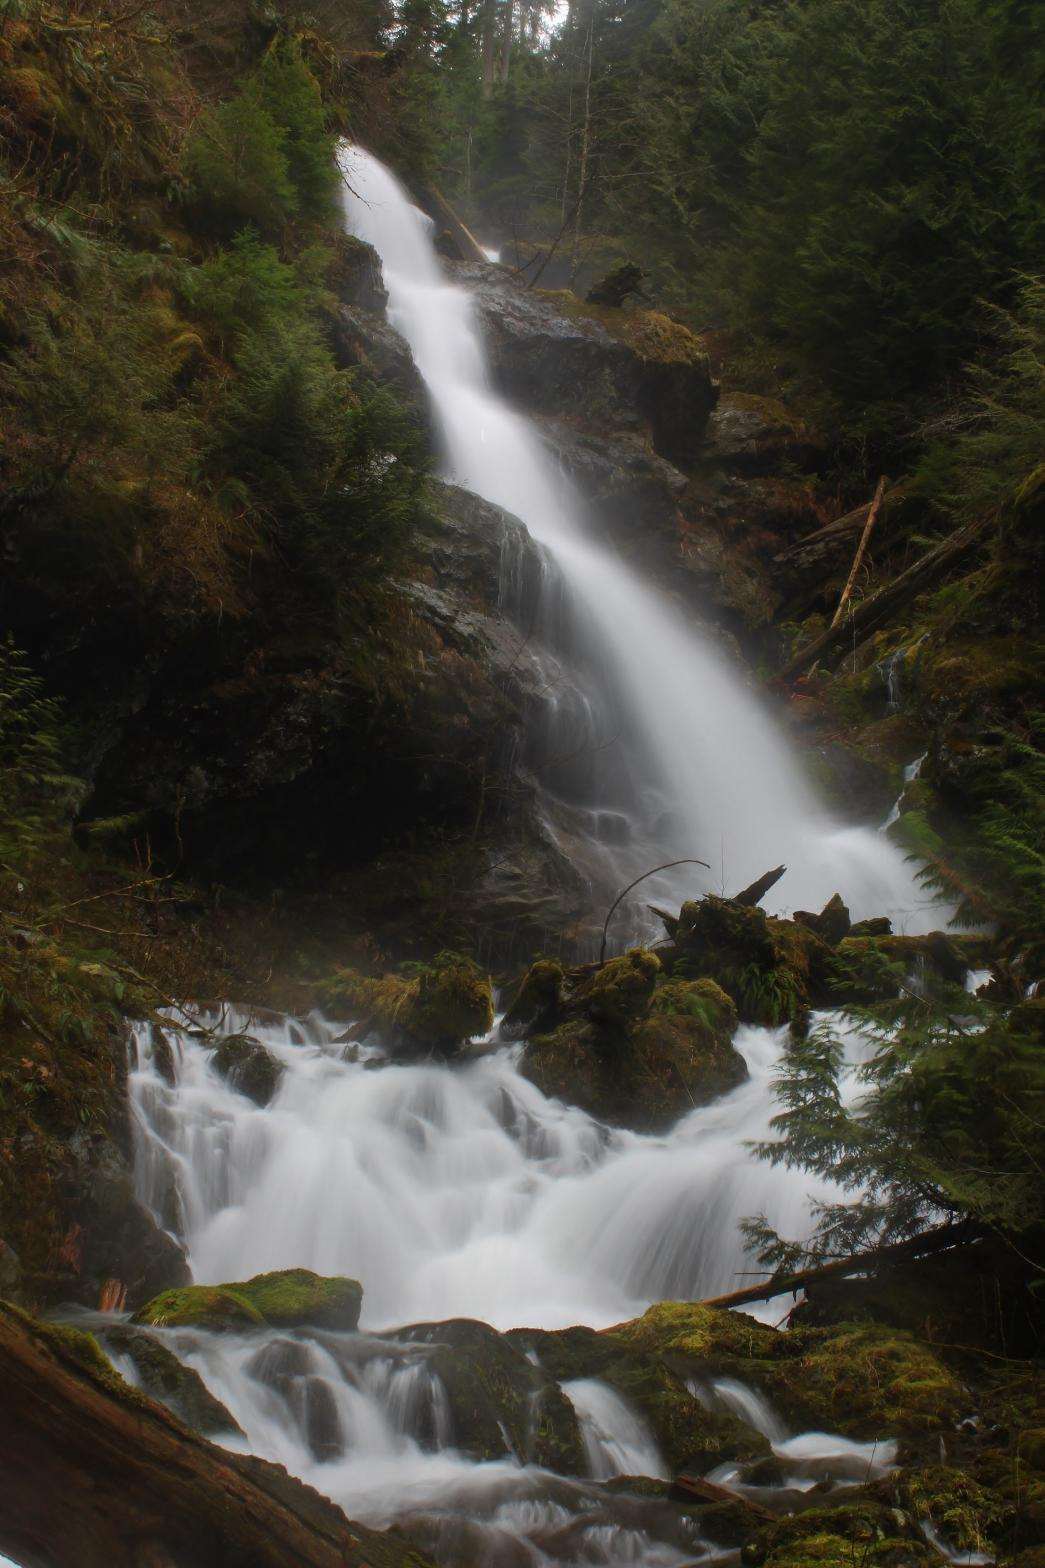 Misty main tier of Change Creek Falls